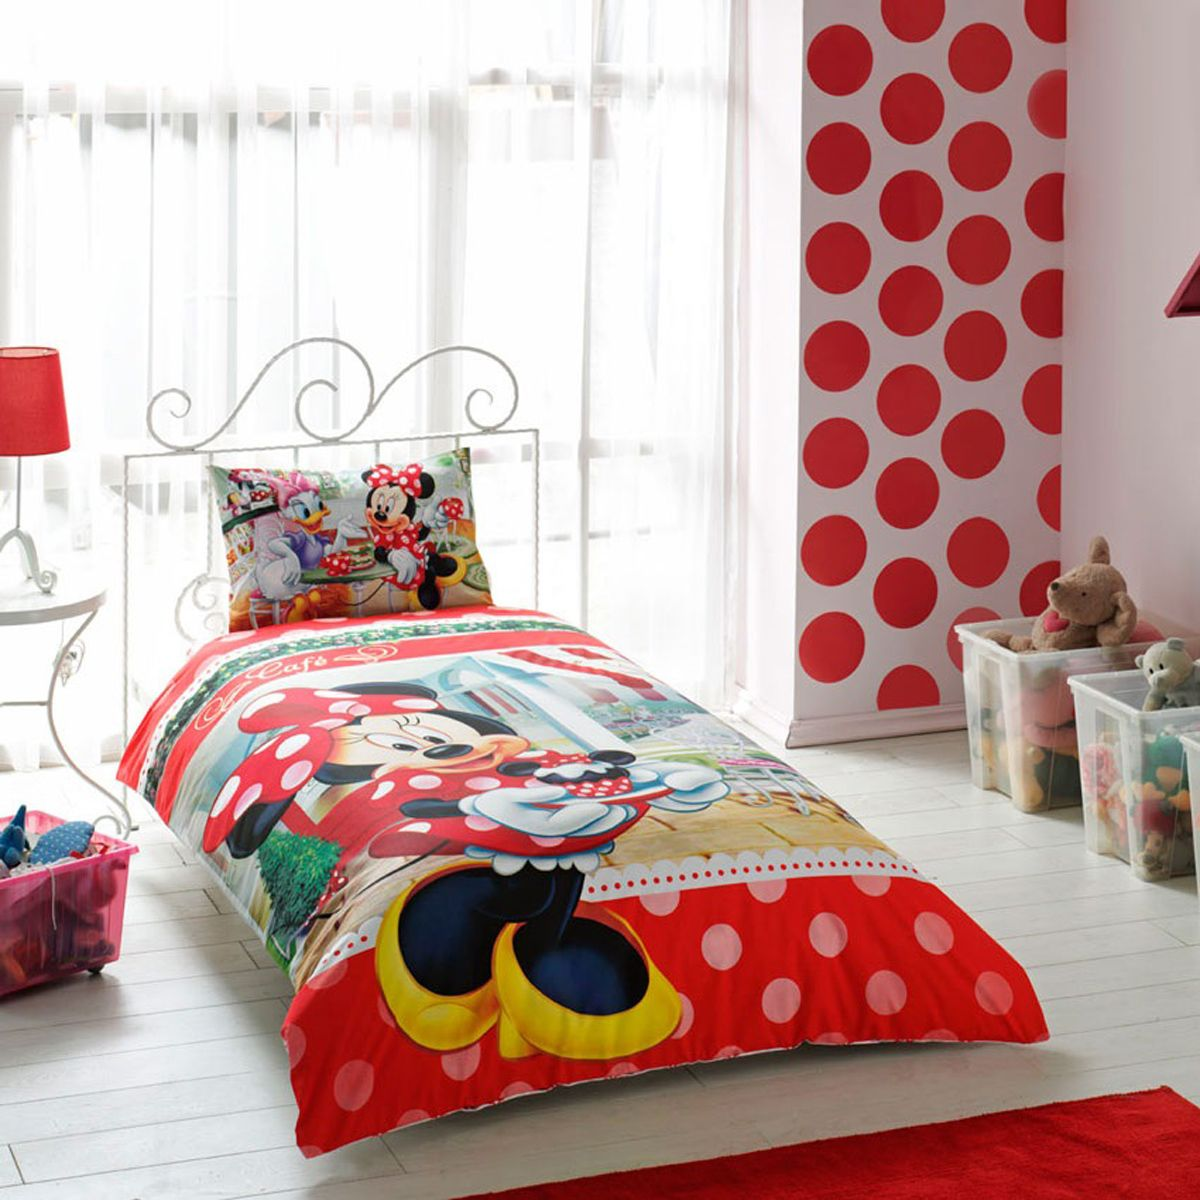 Cute Minnie Mouse Comforter Set Twin Size for Teens